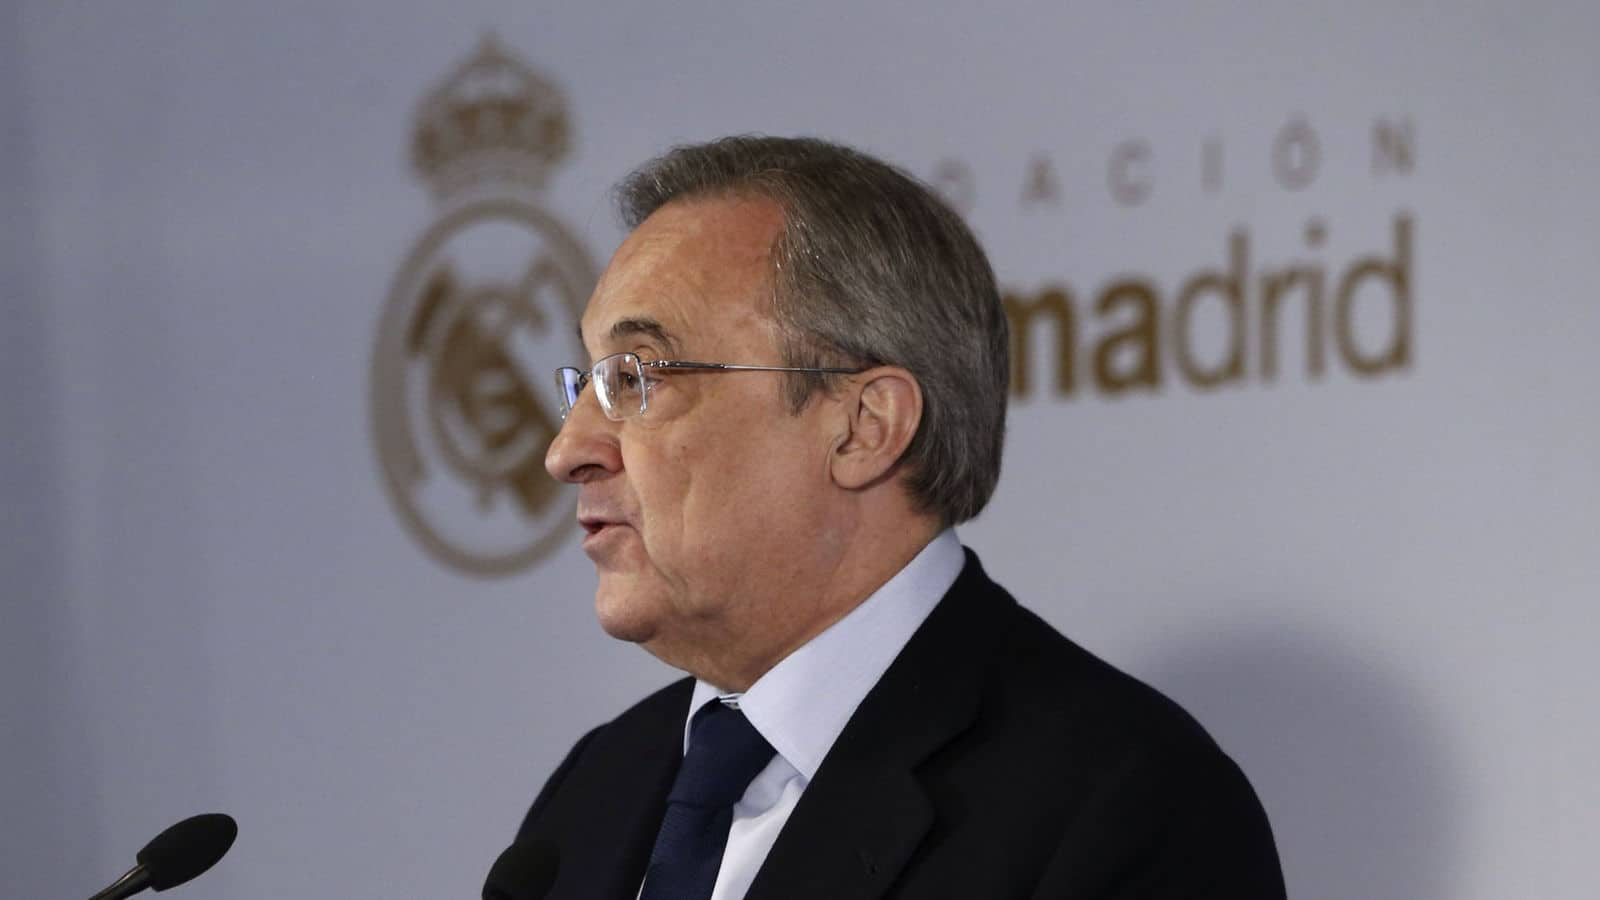 A Company Owned By Real Madrid President Florentino Pérez Could Deprive 30,000 Indigenous Guatemalans of Water